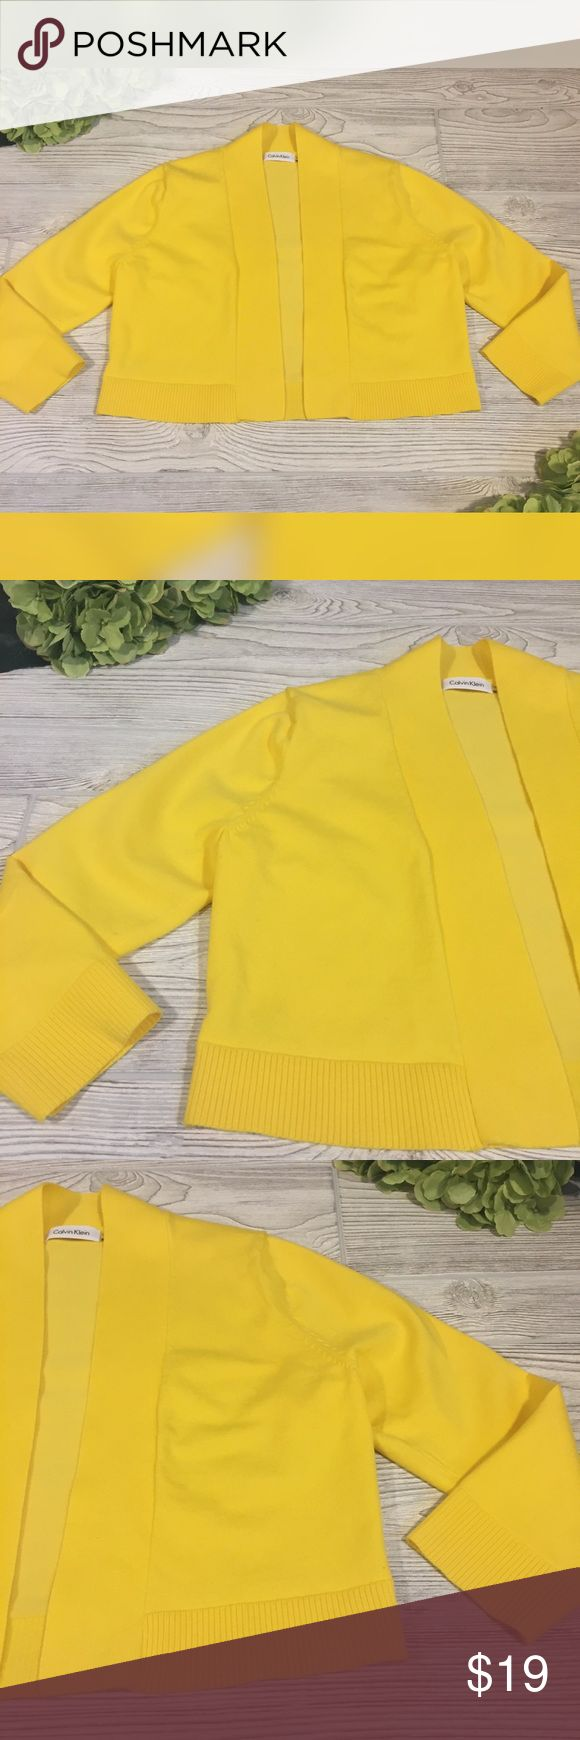 """Calvin Klein Yellow Cropped Shrug Adorable little yellow Calvin Klein shrug in excellent condition. Cropped. 3/4 length sleeves. Approximate flat measurements are armpit to armpit 17.5"""", hem opening 18.5"""", and shoulder to hem length is 16.5"""". Happy to answer questions! Calvin Klein Sweaters Shrugs & Ponchos"""